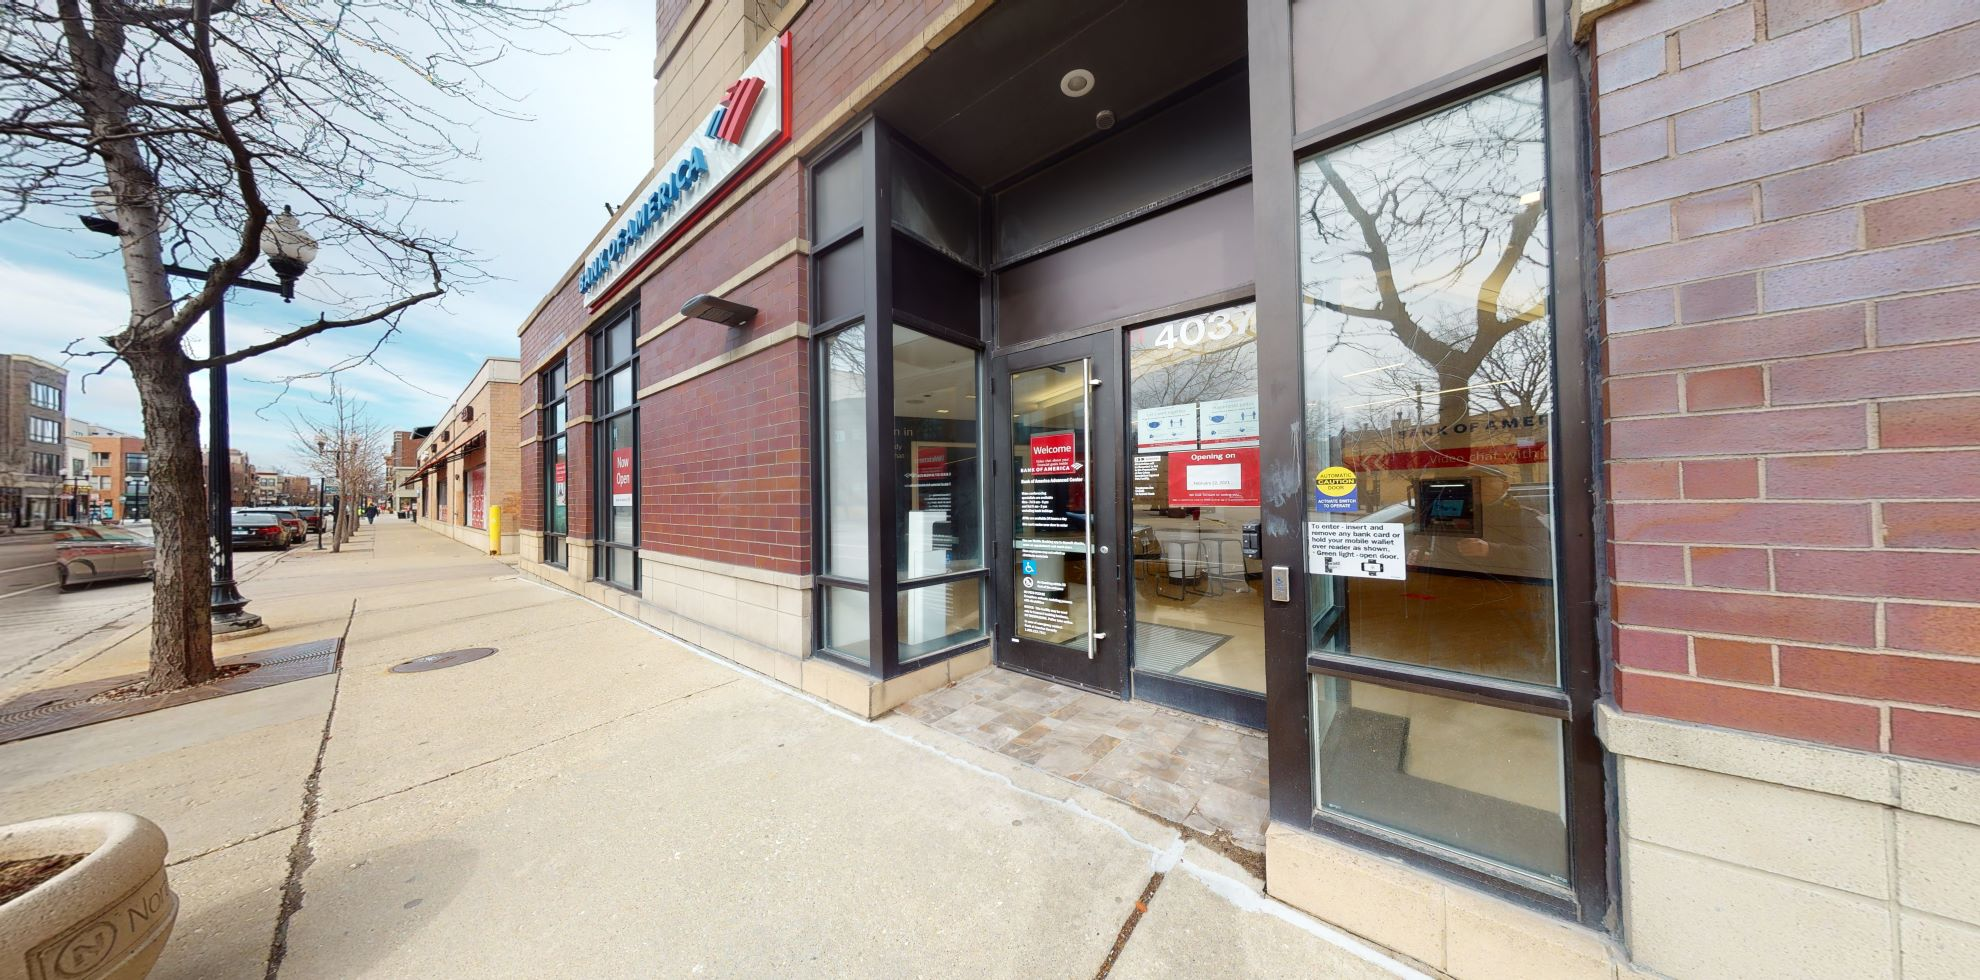 Bank of America Advanced Center with walk-up ATM | 4037 N Lincoln Ave, Chicago, IL 60618